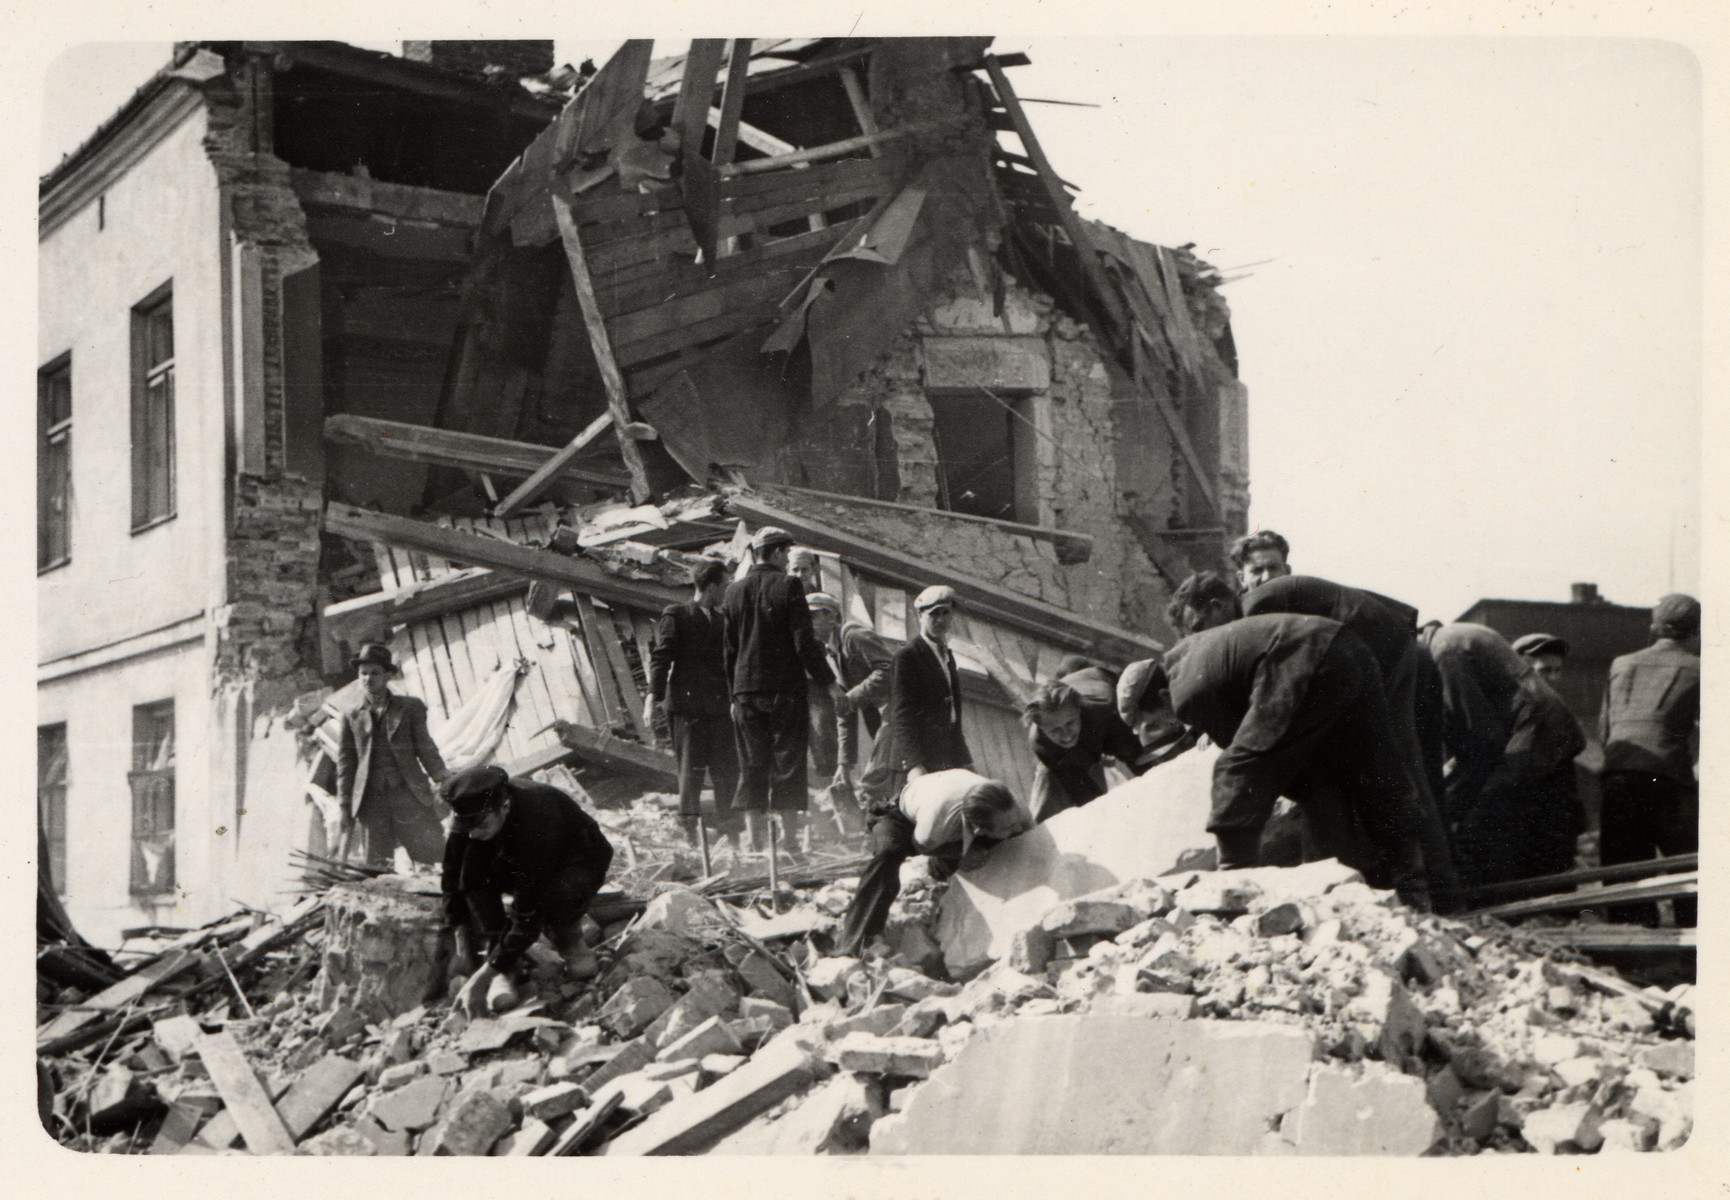 Polish civilians clear the rubble of a bombed out building in besieged Warsaw.